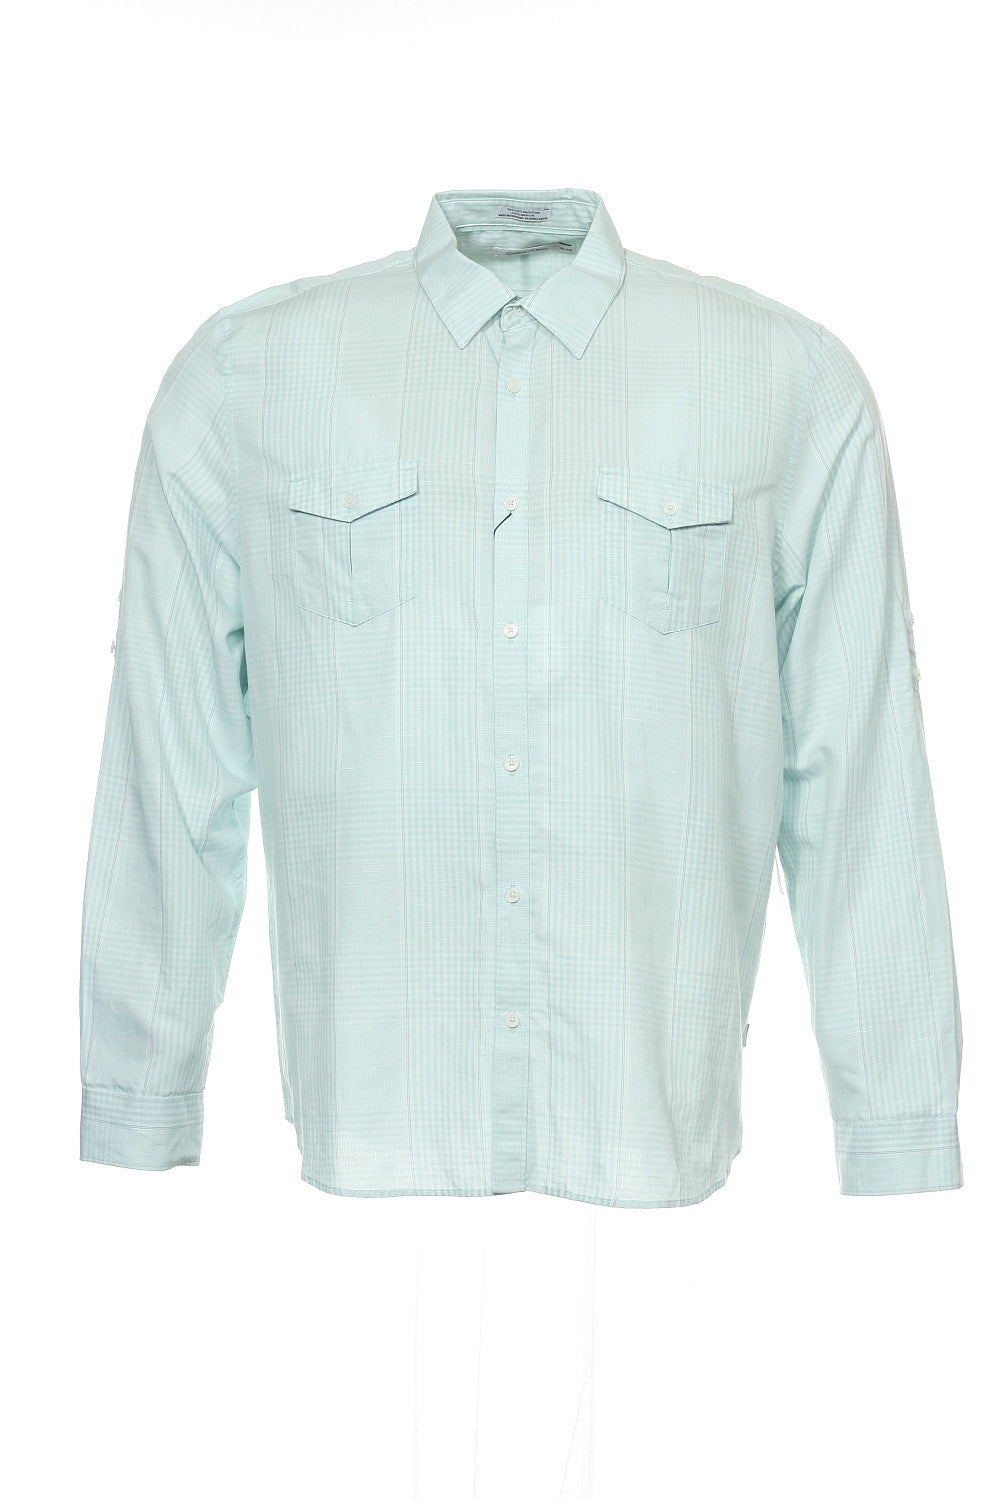 Calvin Klein Mens Light Green Plaid Button Down Shirt